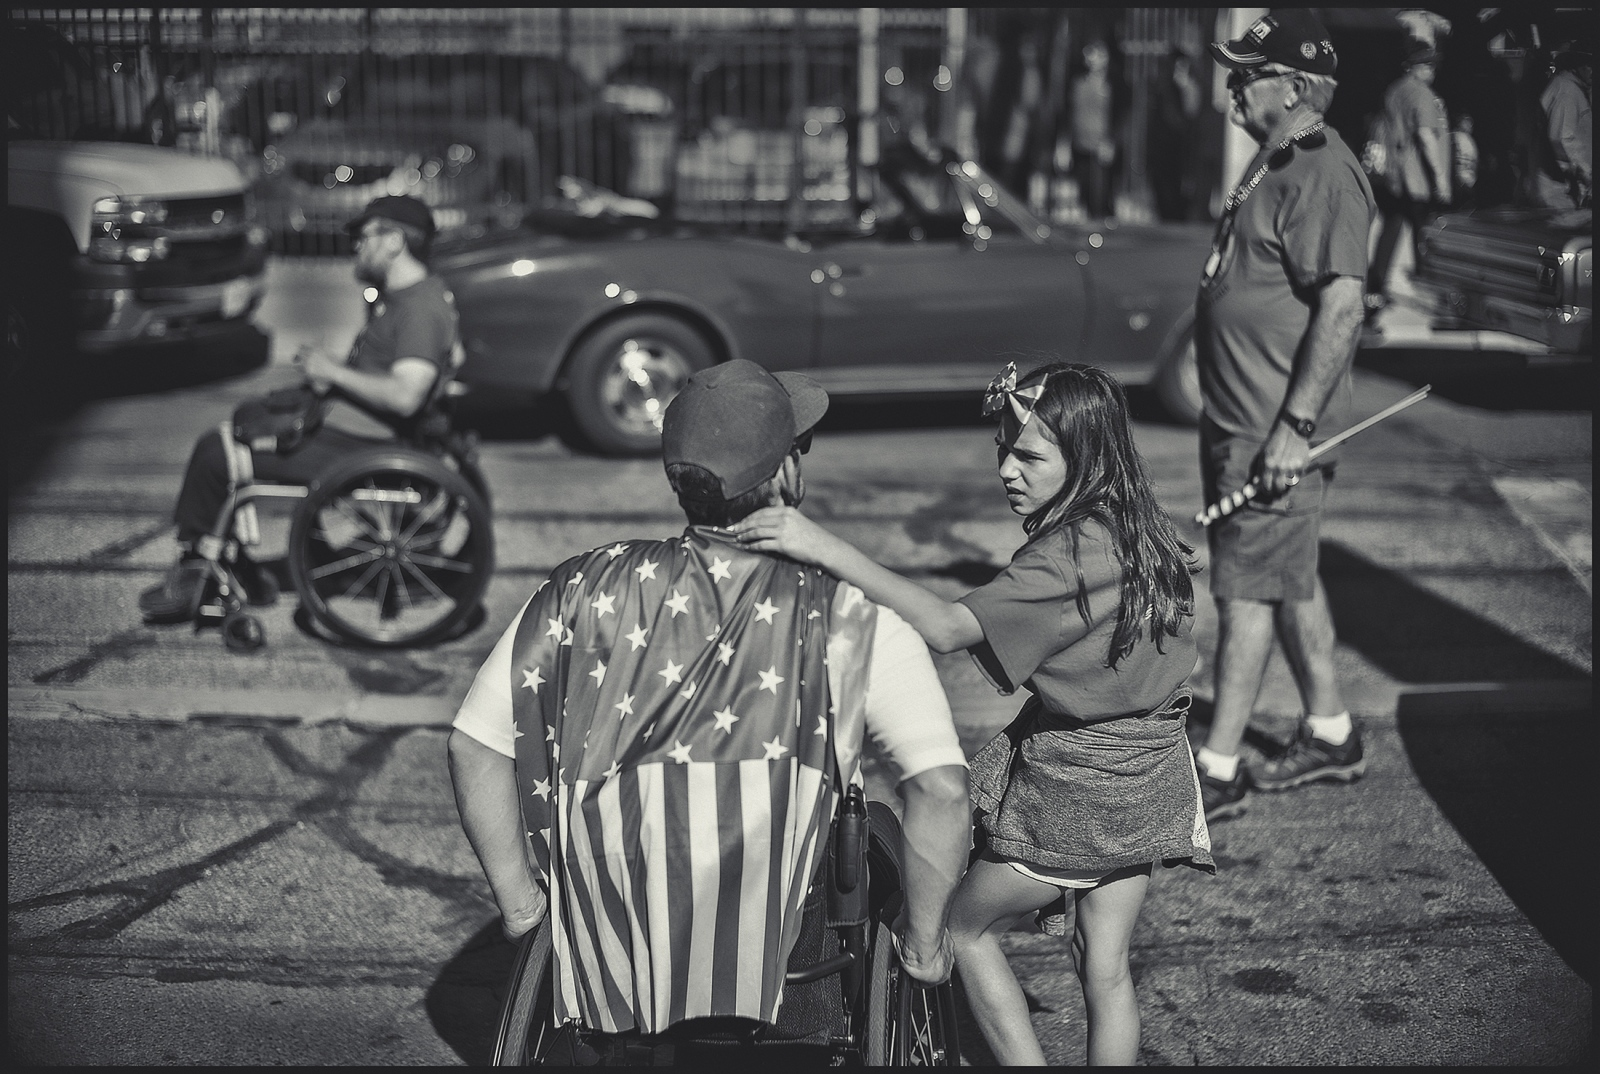 Veteran & daughter. Veterans Day parade. Tucson, AZ. 2016.